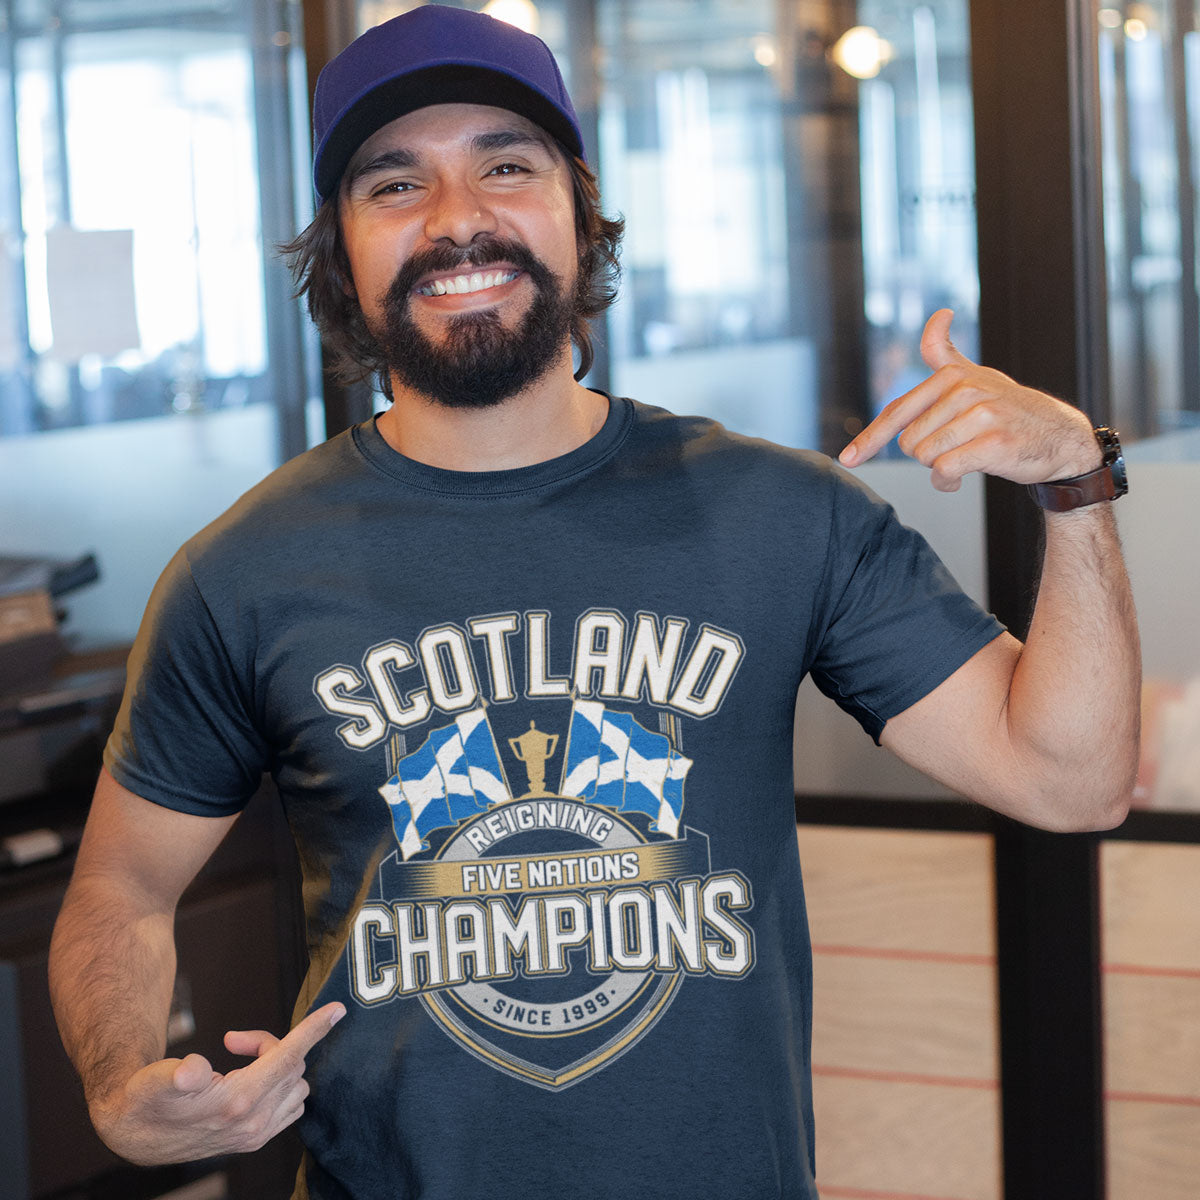 Men's Scotland Reigning Five Nations Champions Tee